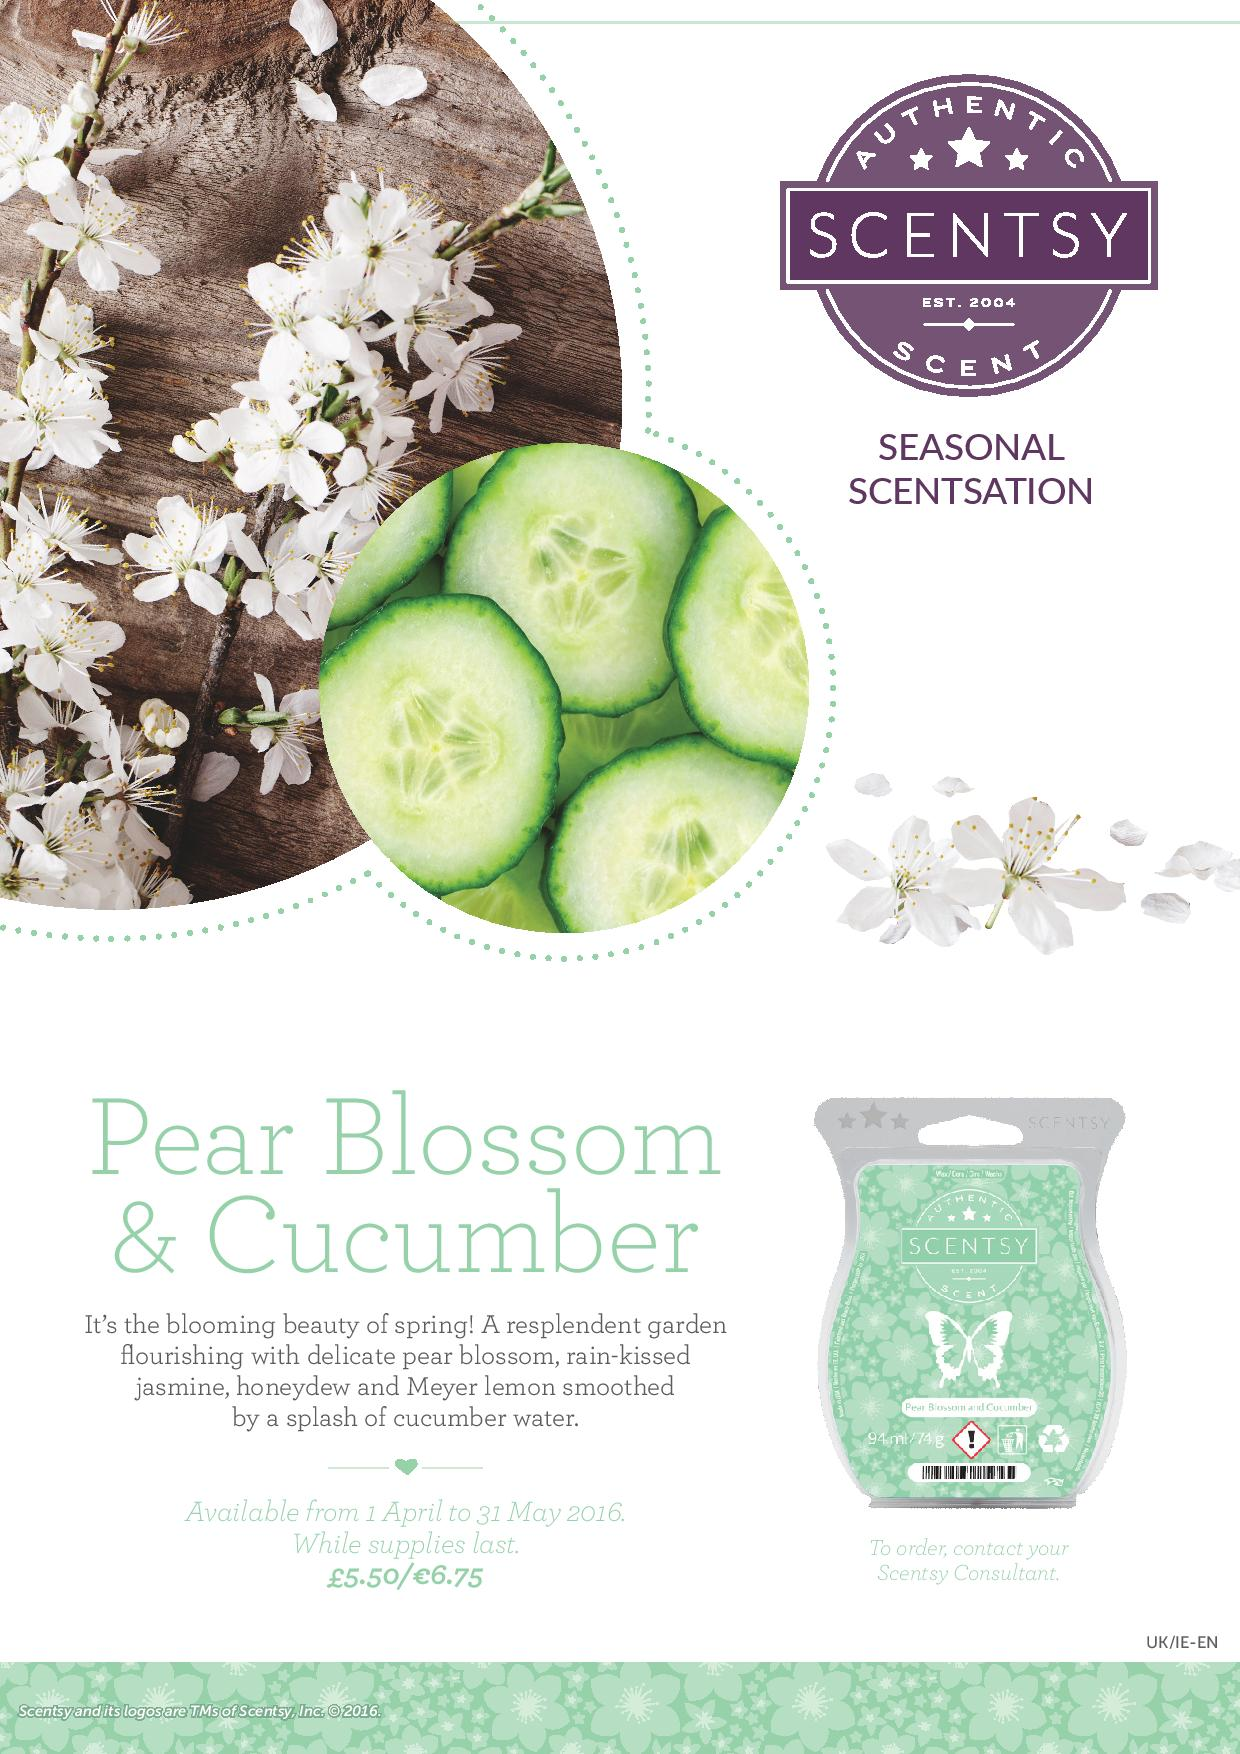 Scentsy UK Pear Blossom & Cucumber Scented Wax